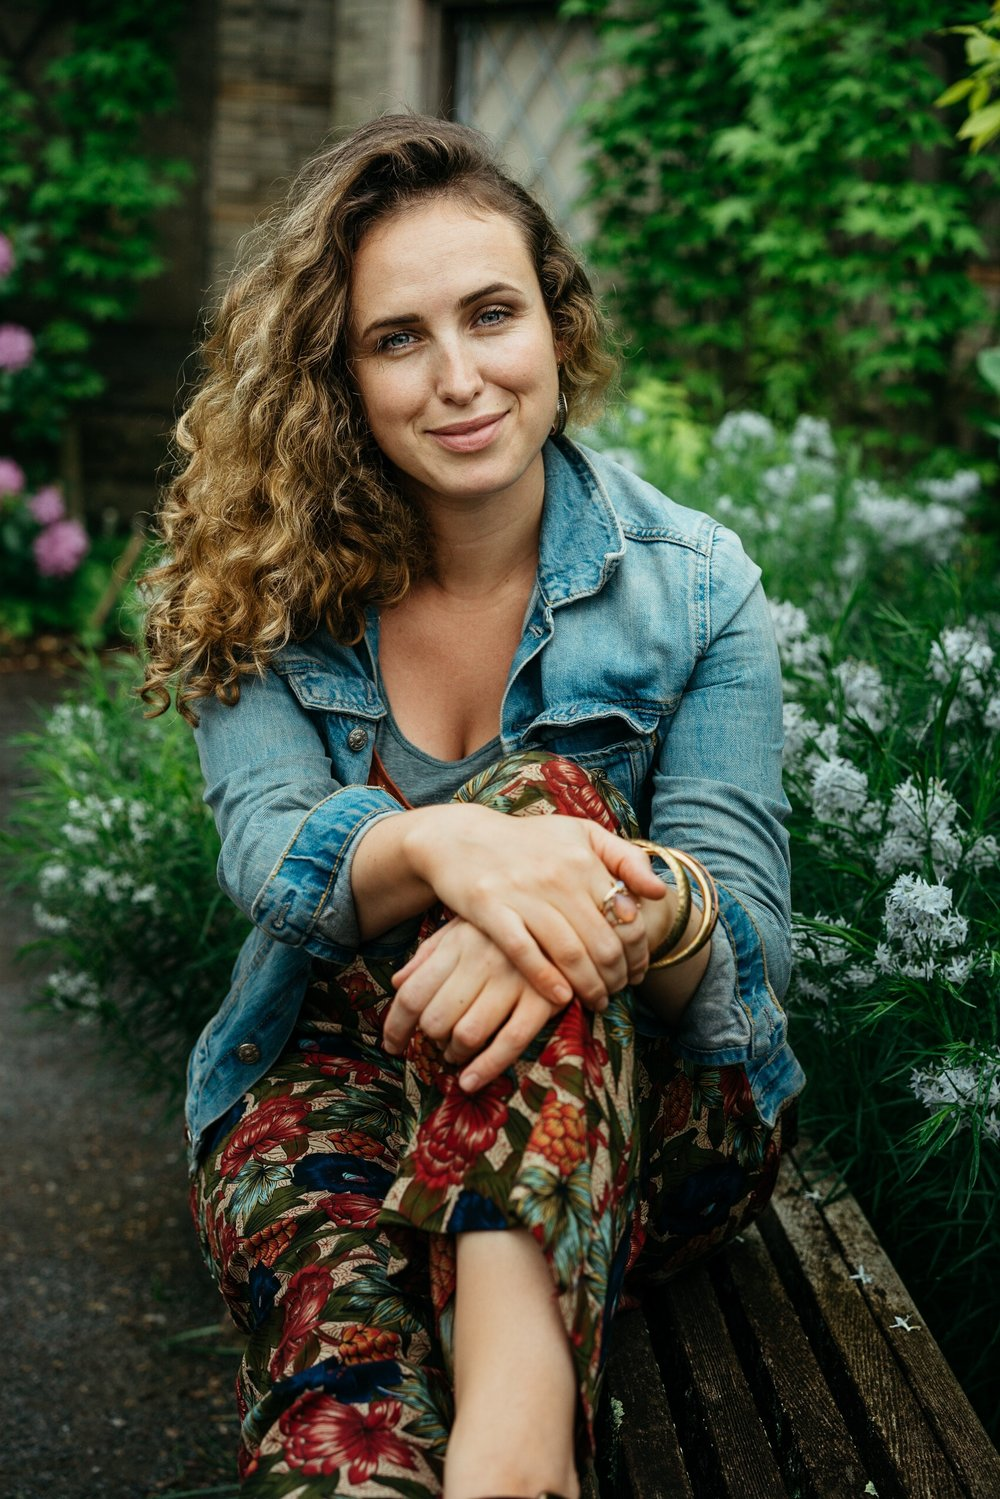 Nora Gross, LMT - I love being a massage therapist--facilitating people's wellness is an incredible privilege. After a successful but stressful career in the the hospitality industry, I felt the need for a seismic change, to do something more noble with my ability to connect with others. I enrolled in the Swedish Institute, where I studied the ins and outs of human anatomy and physiology with some of the best health science teachers in the country.After graduating, I worked with an Ayurvedic physician, through whom I acquired a deep appreciation of ancient, holistic medicines and the potential for connecting and healing the mind and body through massage. Since then, I've completed certifications in medical and perinatal massage, and stay current with the most advanced massage therapy techniques by taking regular continuing education classes. My work is informed and clinical, but always inclusive, personal and caring.I've had the opportunity to work with women throughout and after their pregnancies, and taught them how to massage their own babies. I've helped jiu-jiteiros, bartenders and musicians recover from injuries that could have sidelined them. My work has alleviated chronic pain people lived with for years, believing it was a permanent part of their lives. And I've converted many skeptics into true believers in the benefits of regular massage.Let's work together!